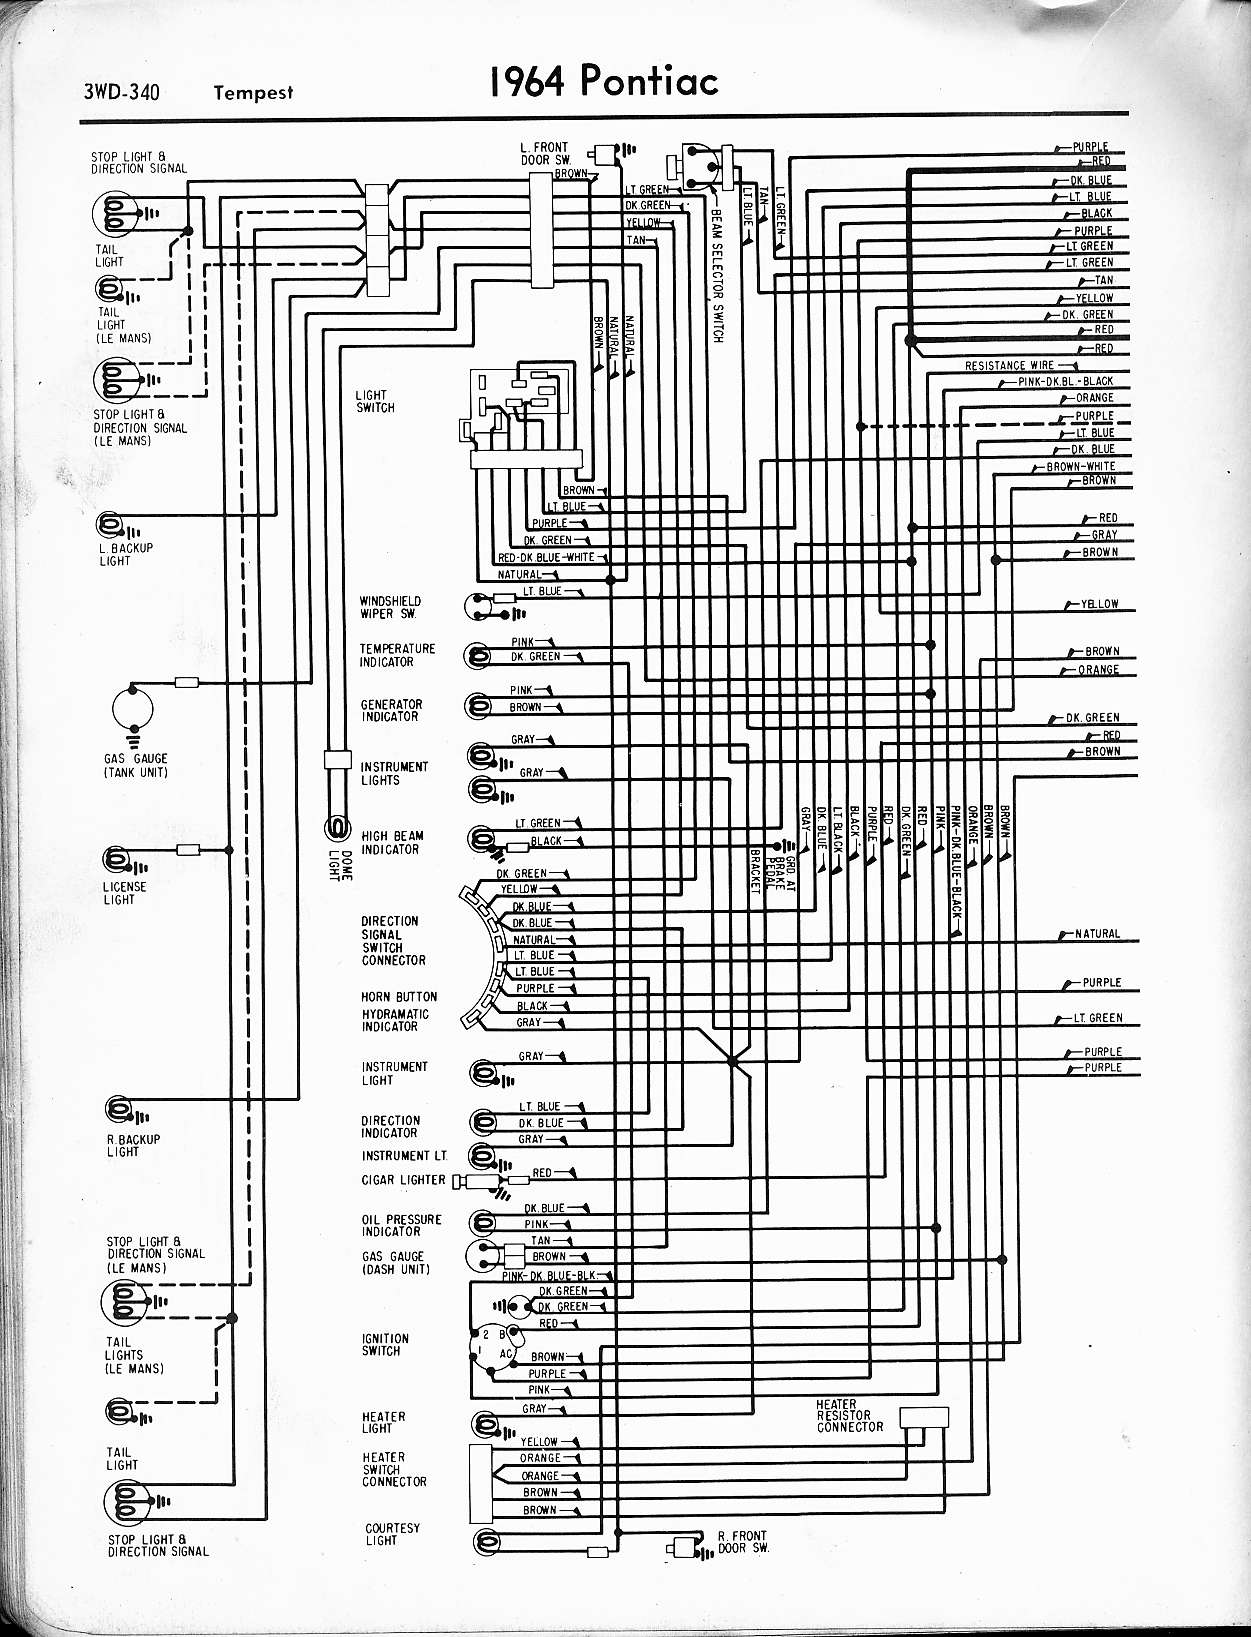 1974 Gto Wiring Harness Diagram Pictures 1975 Corvette Electrical Schematic 66 Ignition Switch Detailed Schematics Rh Mrskindsclass Com Pontiac 1973